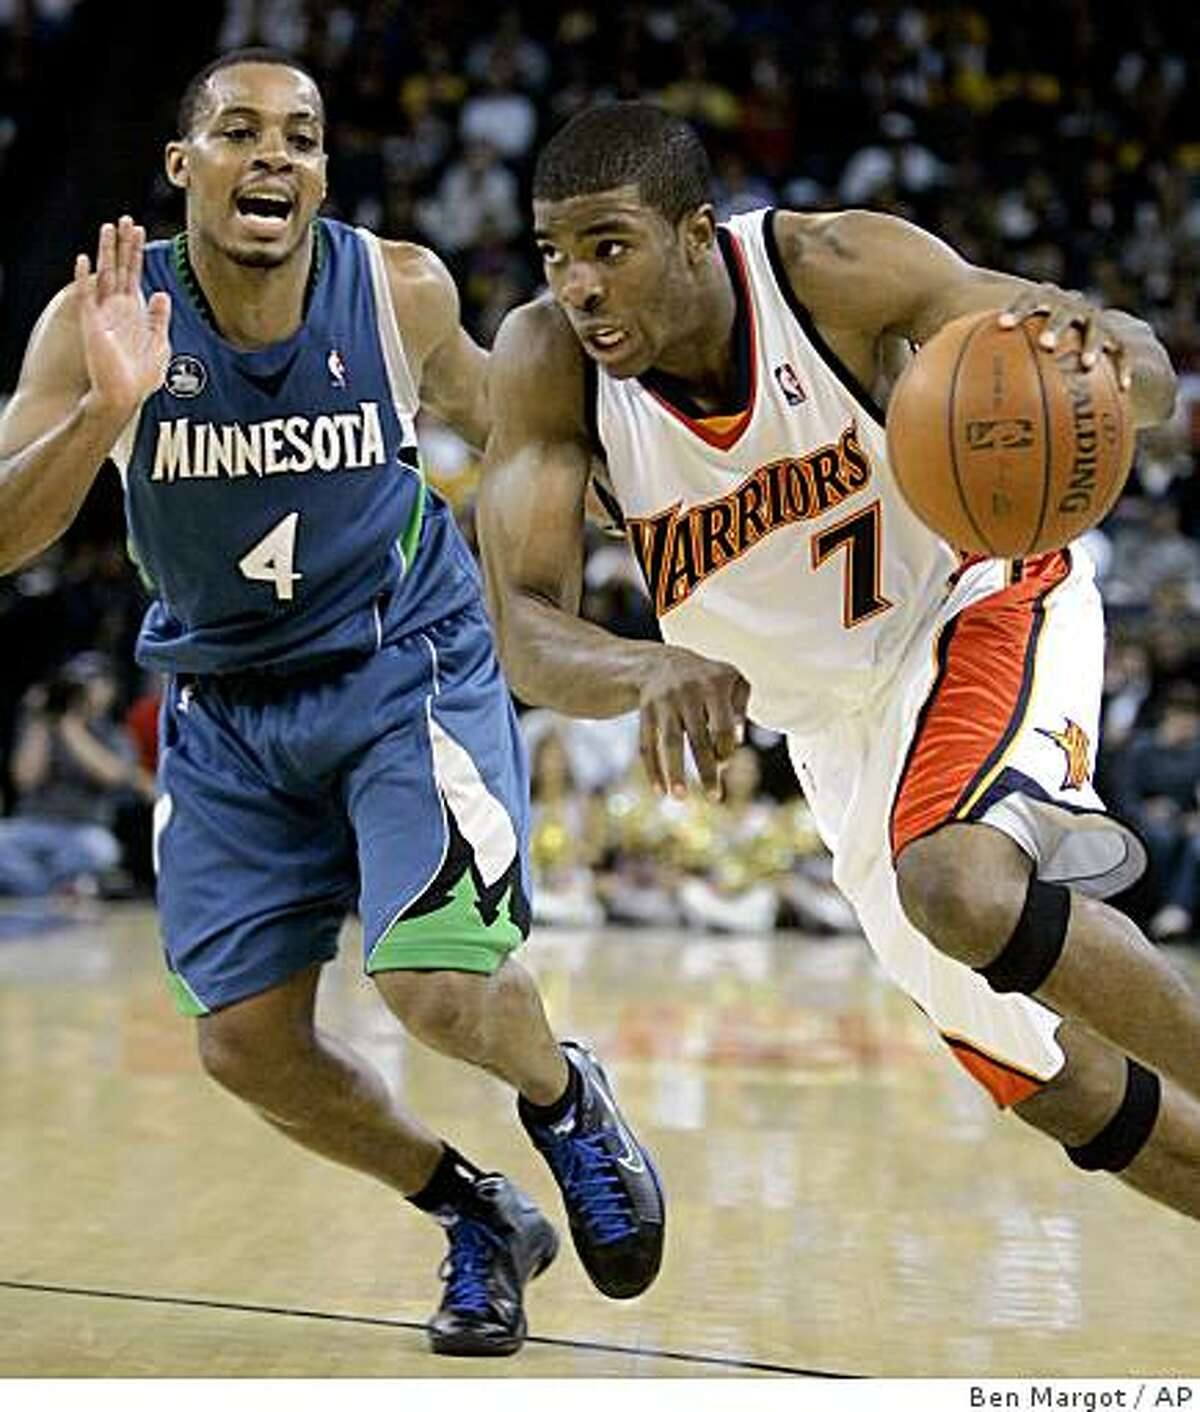 Golden State Warriors' Kelenna Azubuike (7) drives against Minnesota Timberwolves' Randy Foye (4) during the first half of an NBA basketball game Tuesday, Nov. 11, 2008, in Oakland, Calif. (AP Photo/Ben Margot)